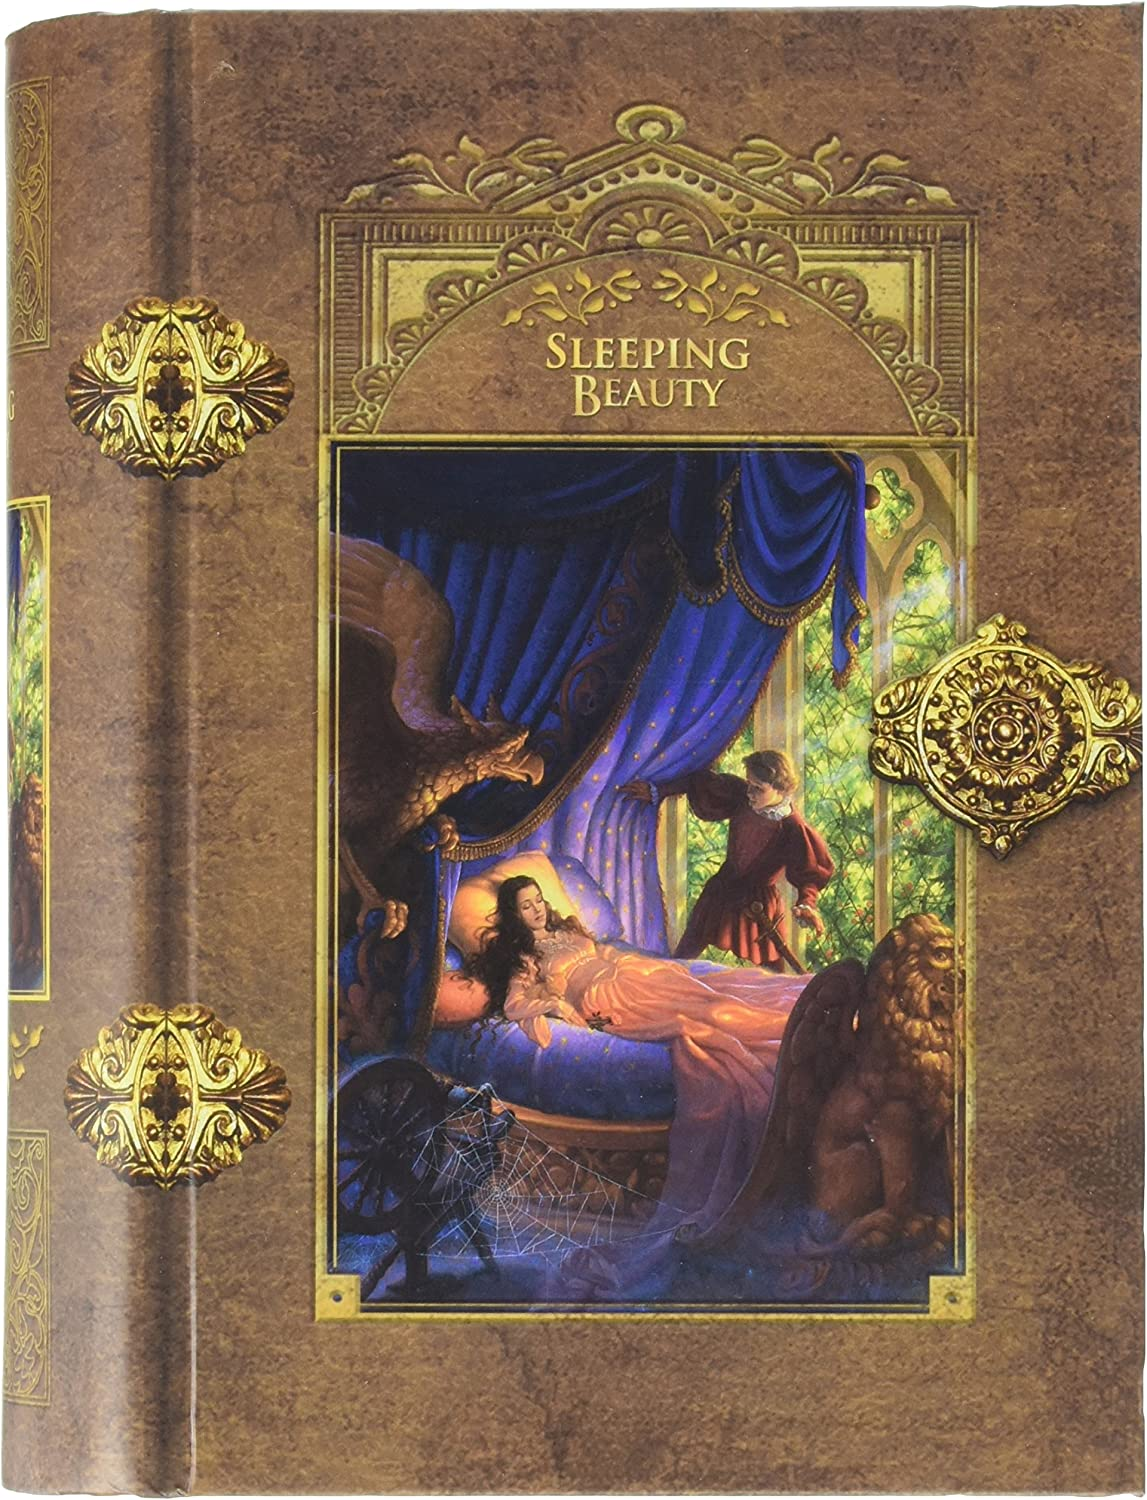 MasterPieces 25% OFF Sleeping Beauty Super popular specialty store Book Box Assortment Jigsaw Puzzle